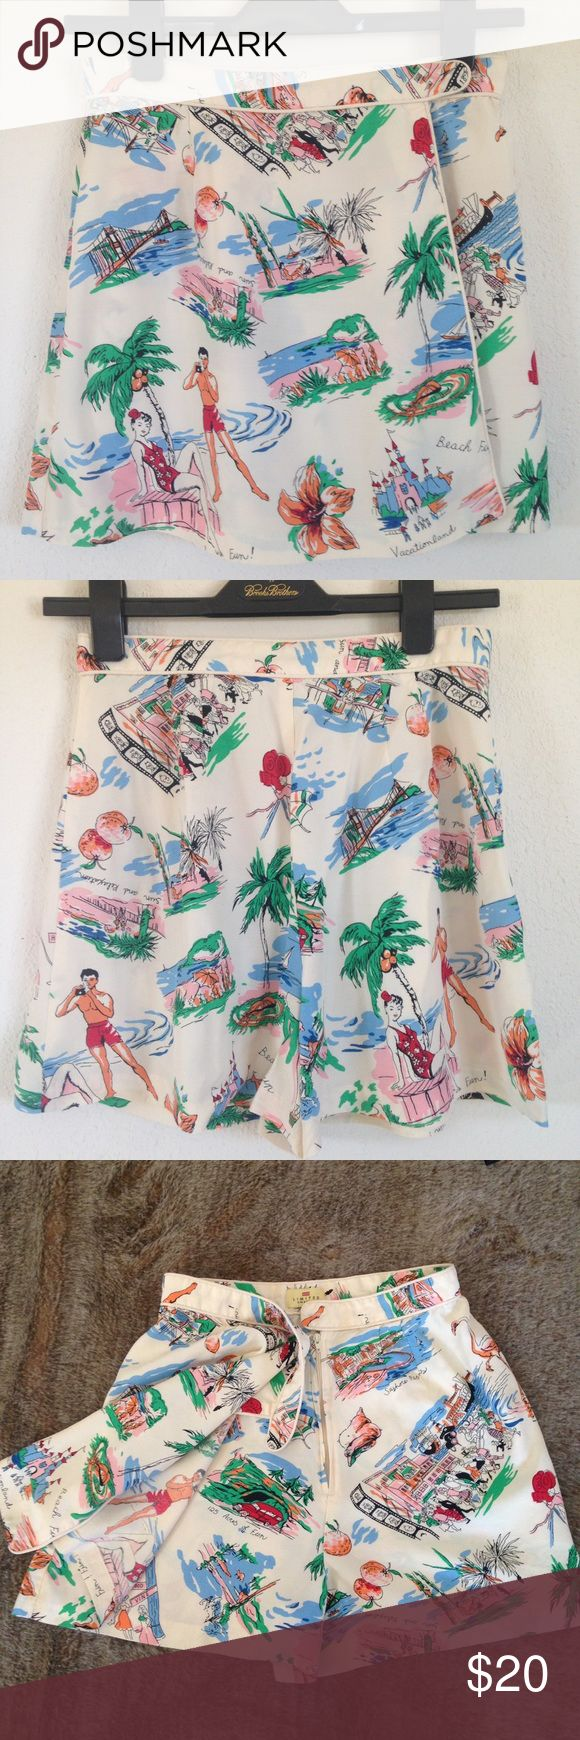 World's Greatest Vintage Skort Seriously, look at this thing!! Amazing retro fabric with travel-themed images. Awesome condition. Piping and crossover button closure to cover hidden front zipper. Size 8, waist flat approx 13 1/4, length approx 15 1/2. Get it now, or live to rue the day. Limited America Shorts Skorts